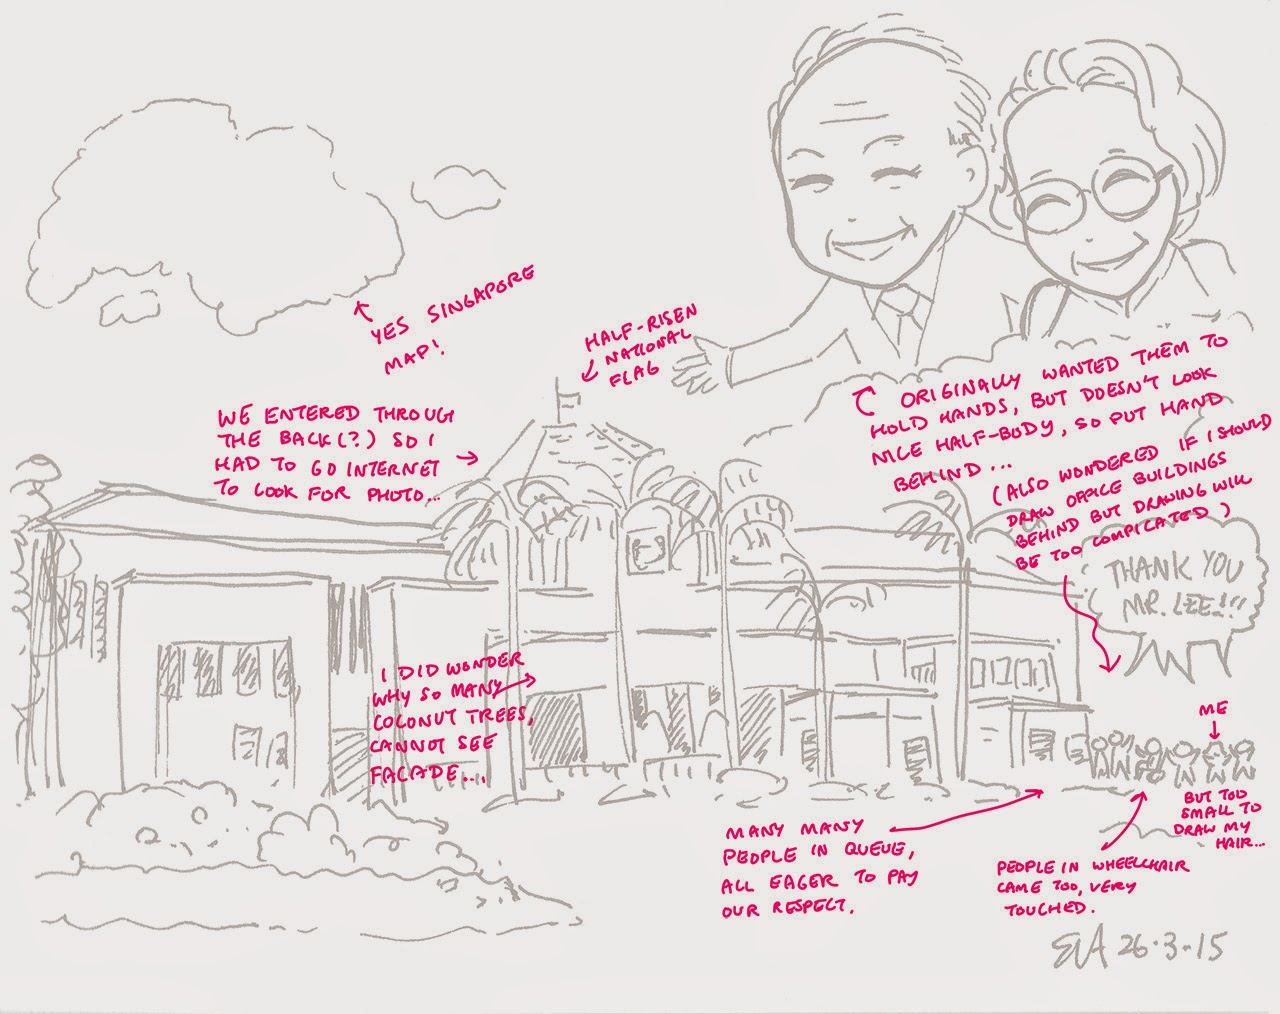 Tribute to Mr Lee Kuan Yew and his wife